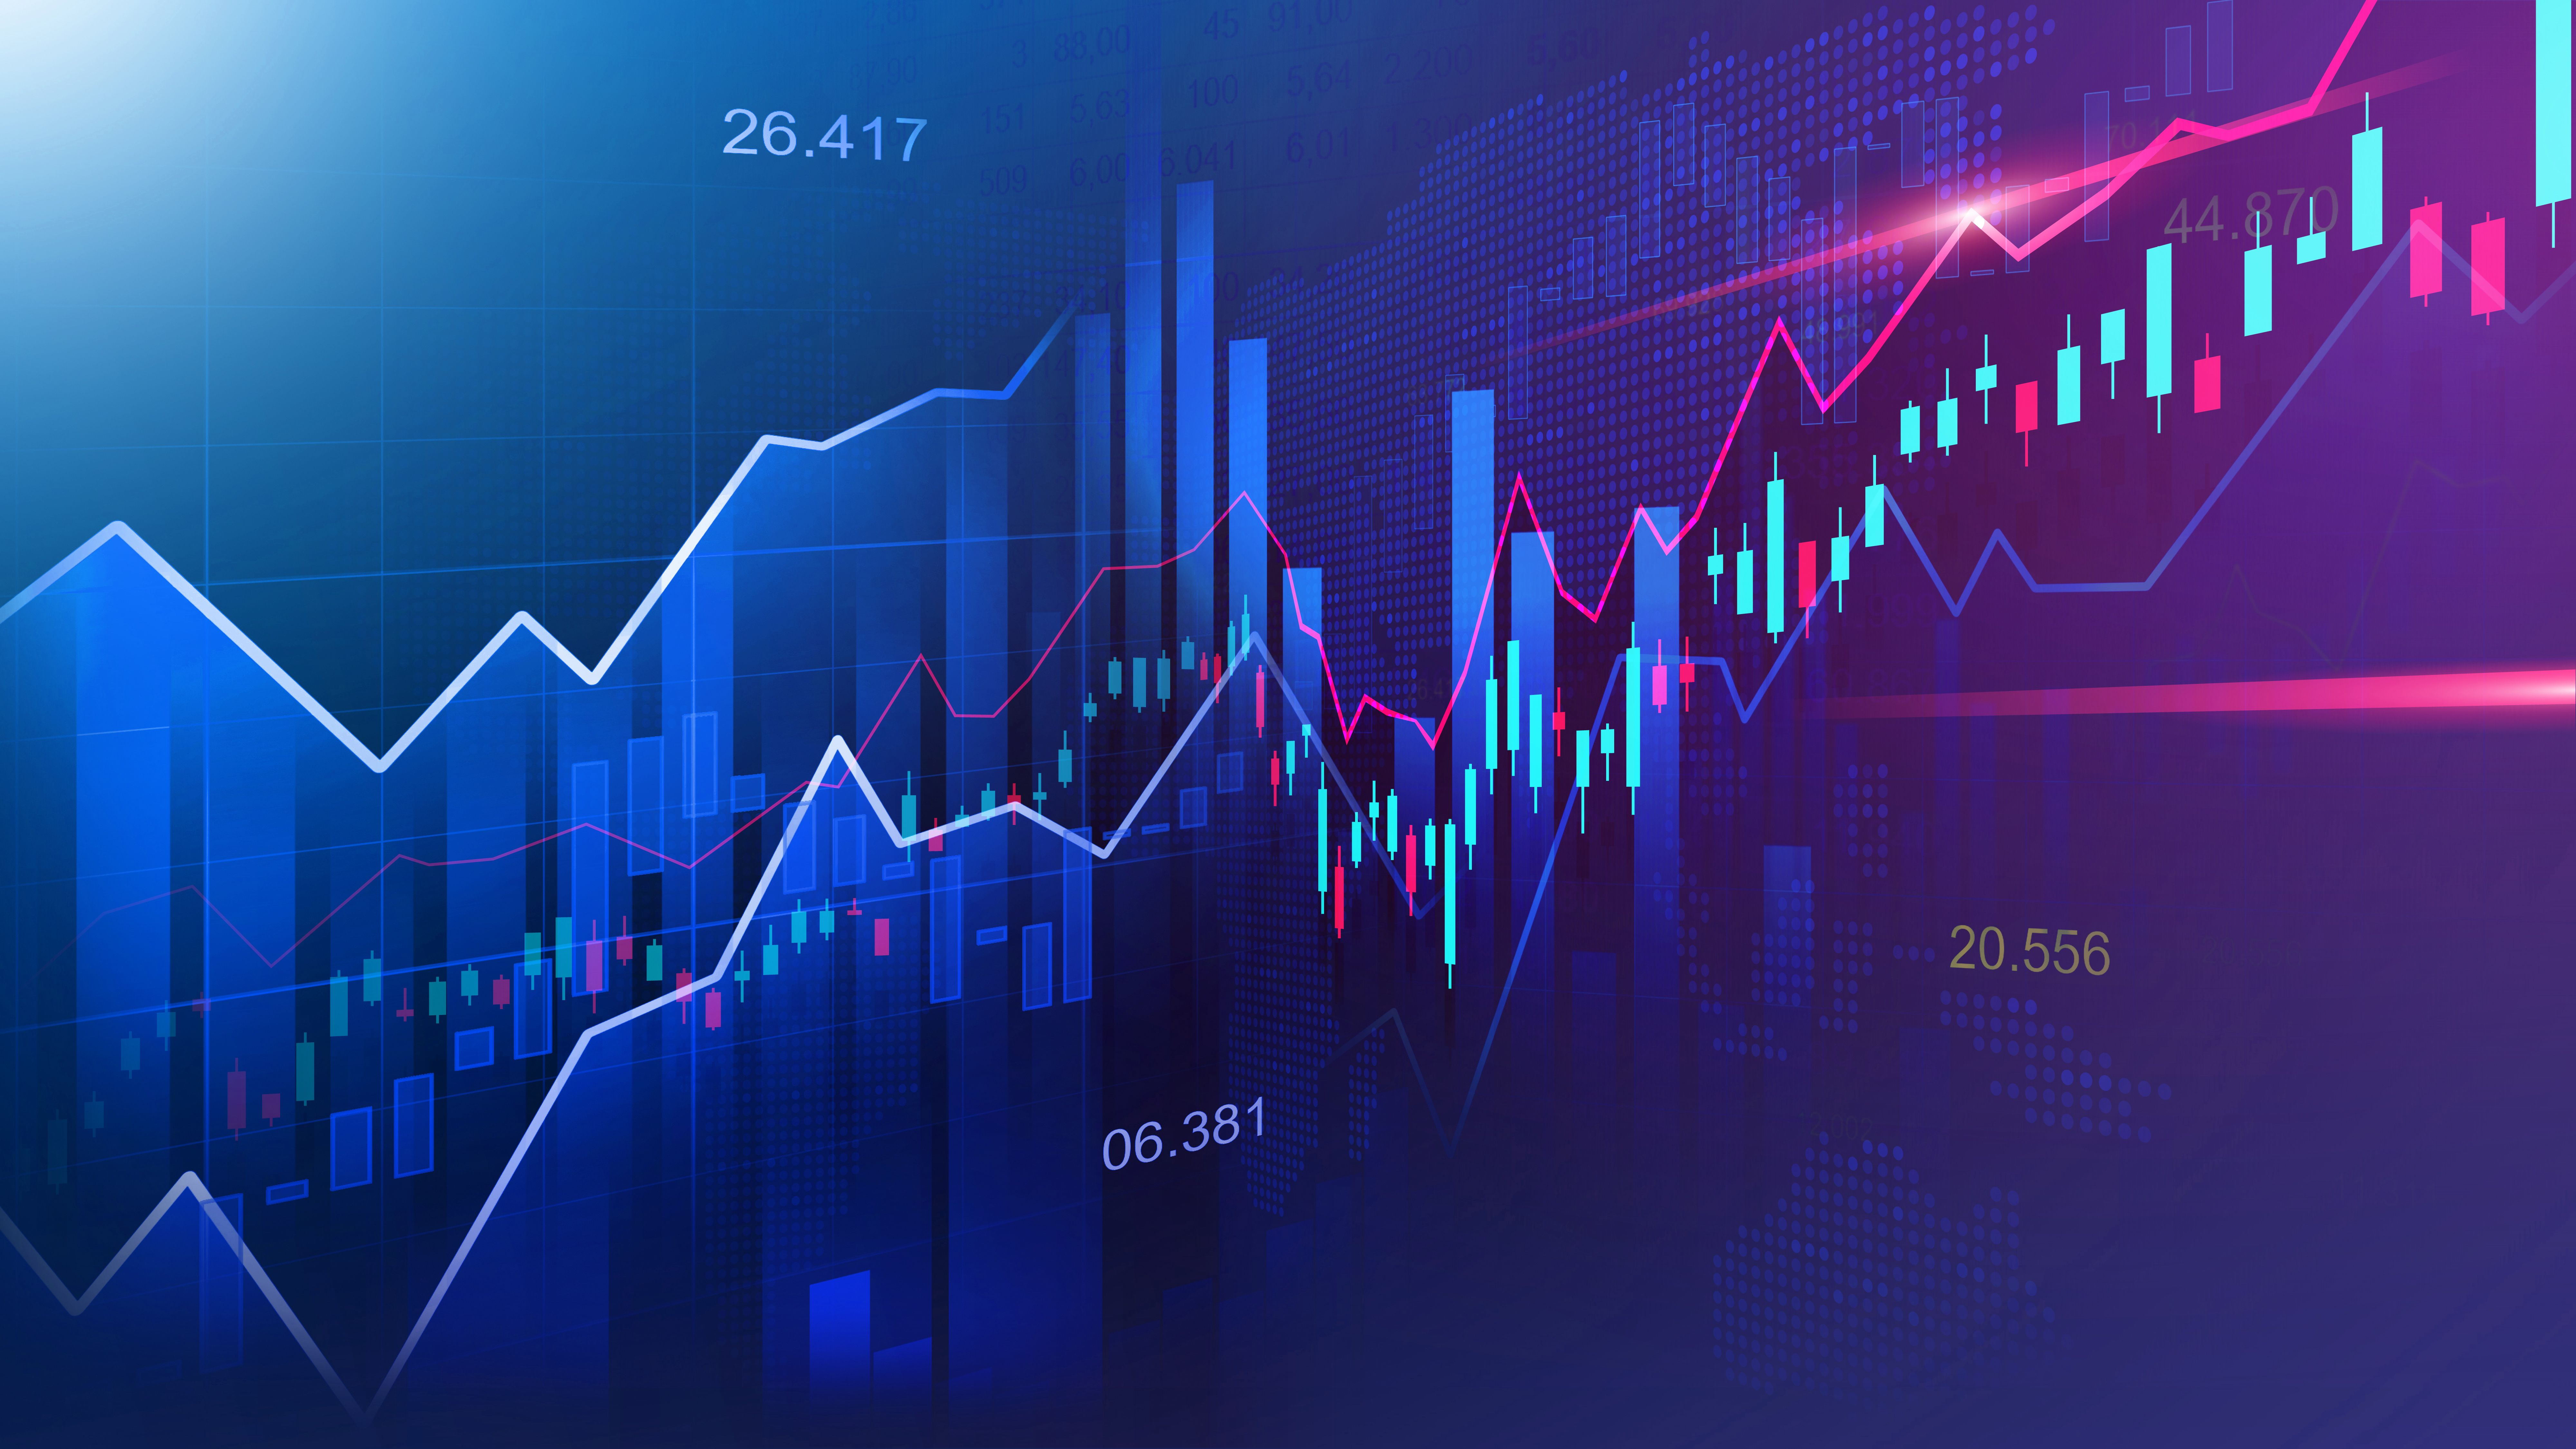 Stock Market Or Forex Trading Graph In Double Exposure Display Graphic Concept Stock Market Forex Trading Stock Market Graph